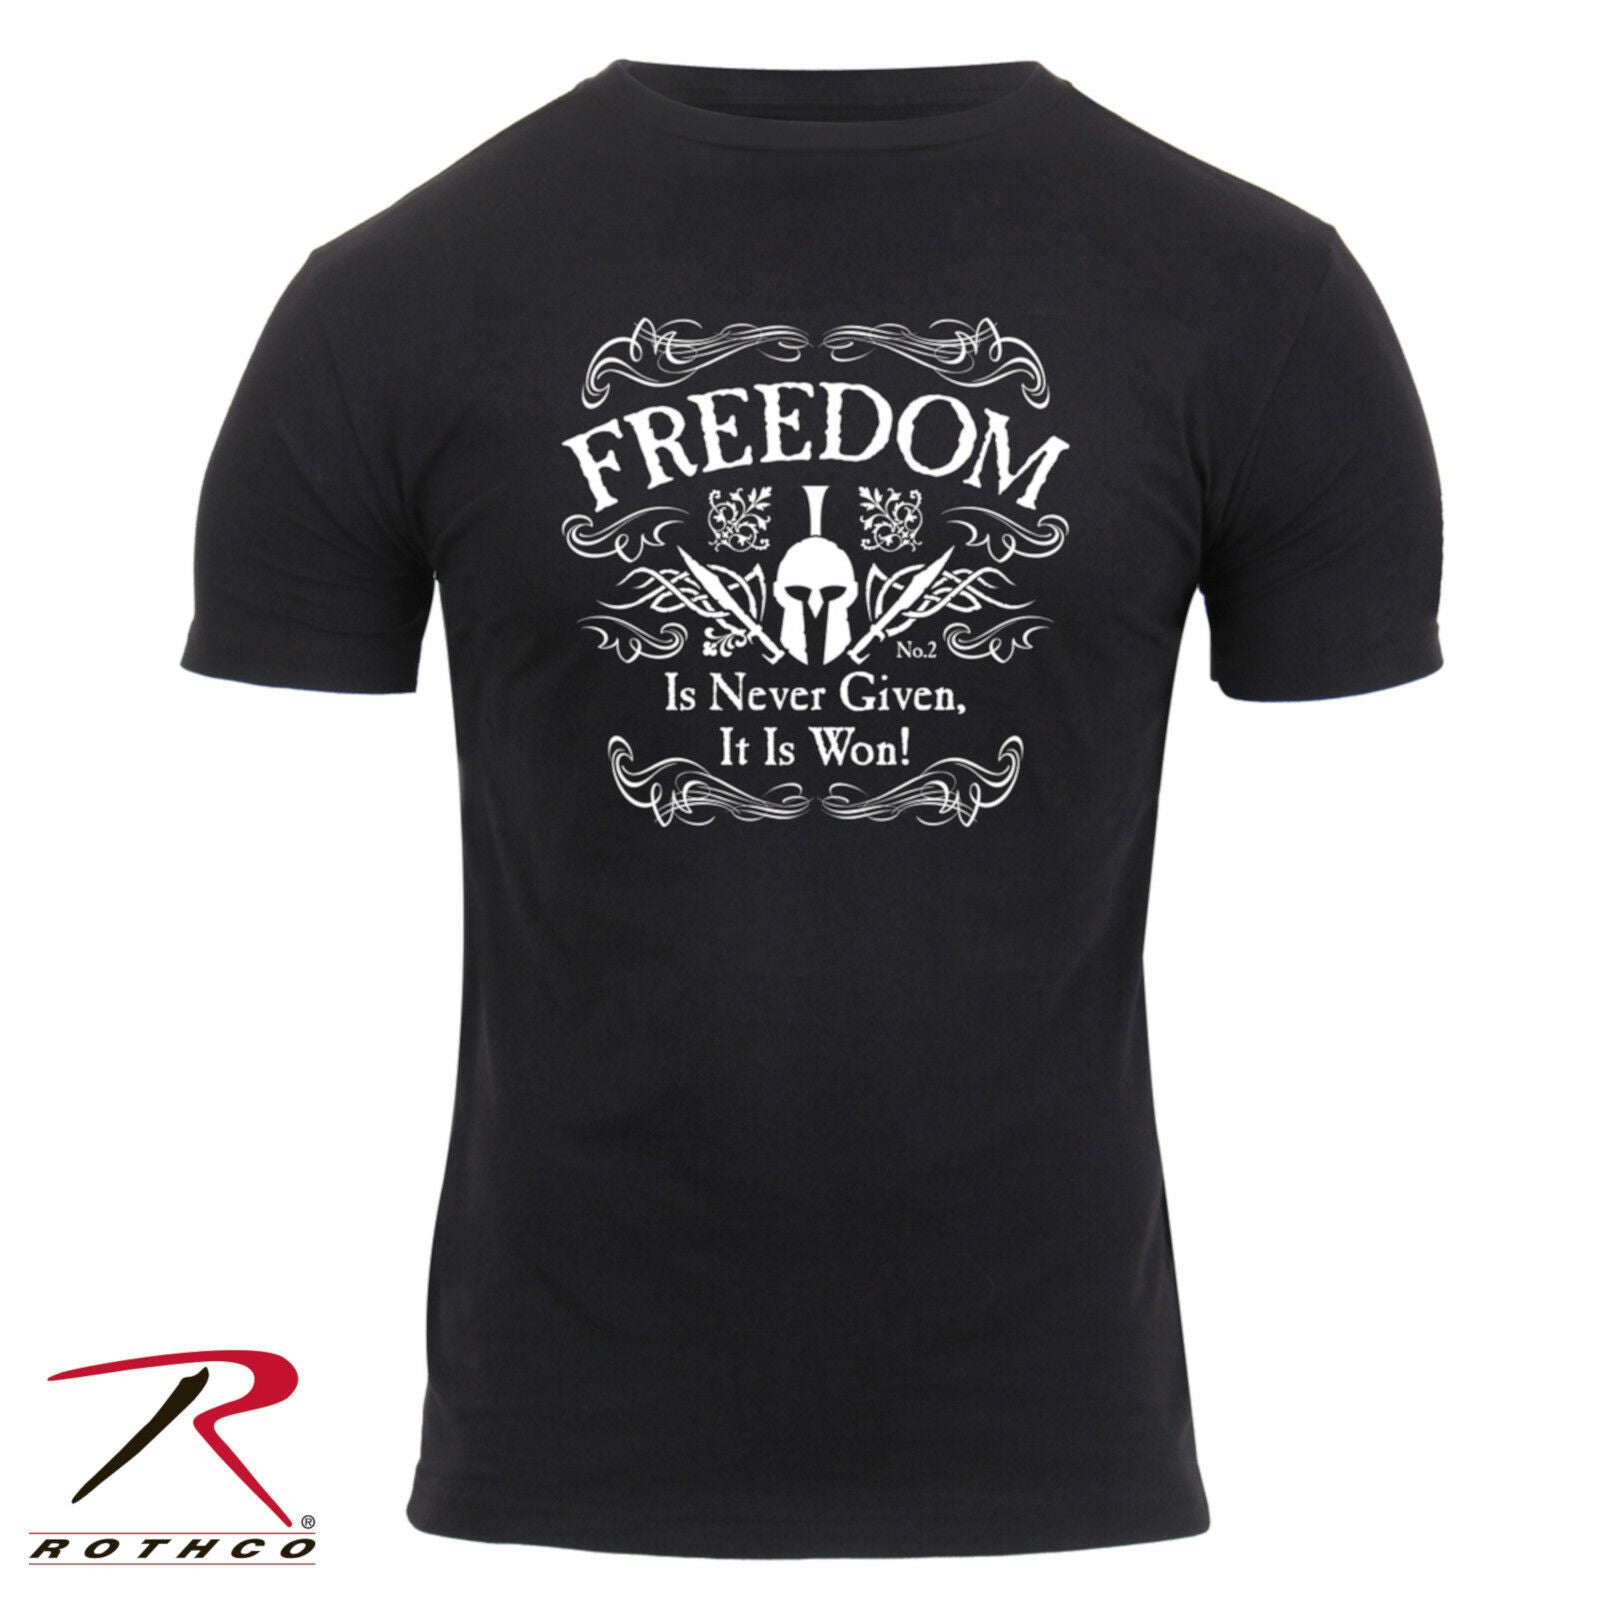 391feb7ae0bb8 Rothco Men's Athletic Fit 'Freedom' Tactical T-Shirt In Black ...